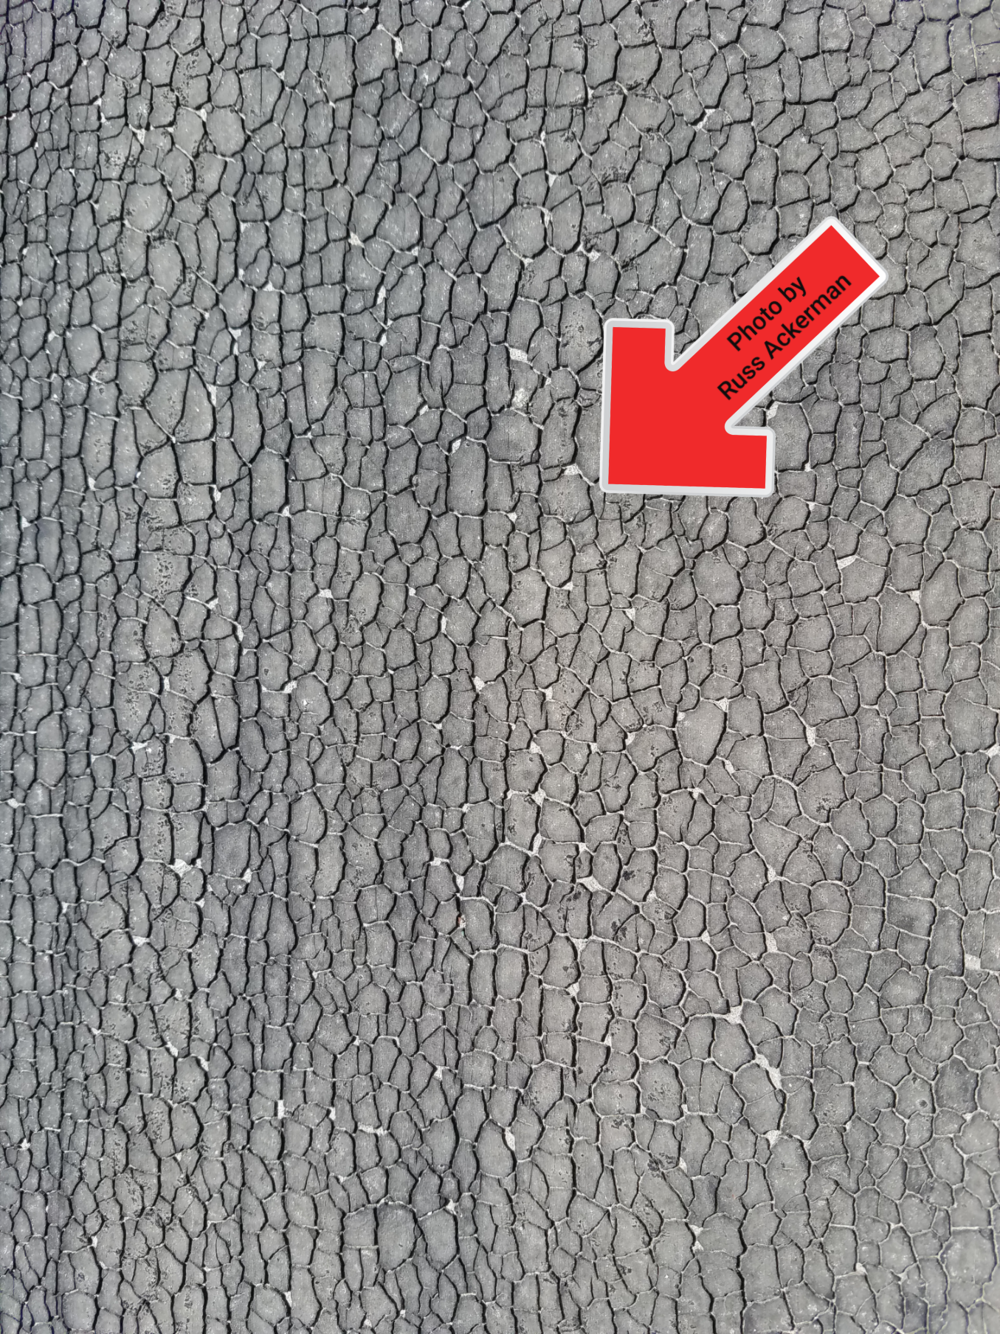 Alligatoring is another term for widespread cracking of a roof surface or underlayment indicating it's near the end of its lifespan.